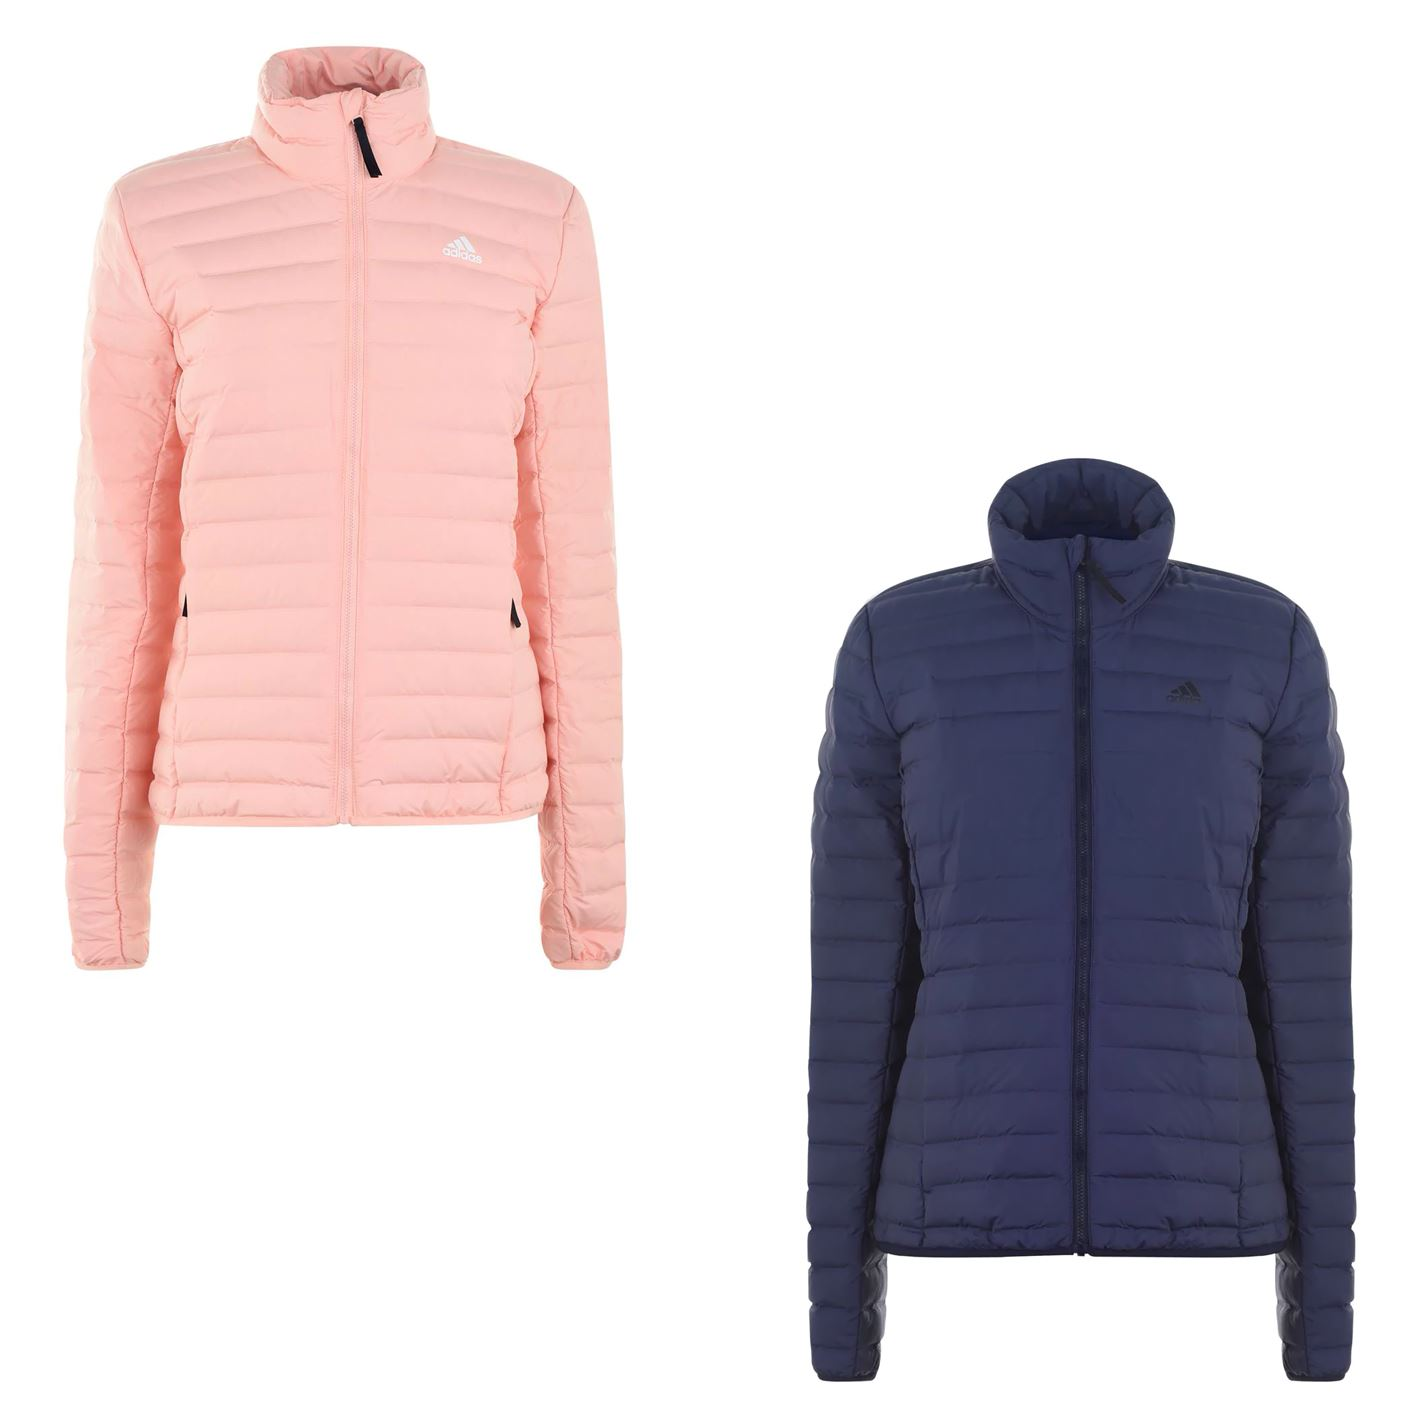 Details about adidas Varilite Down Jacket Womens Coats Outerwear